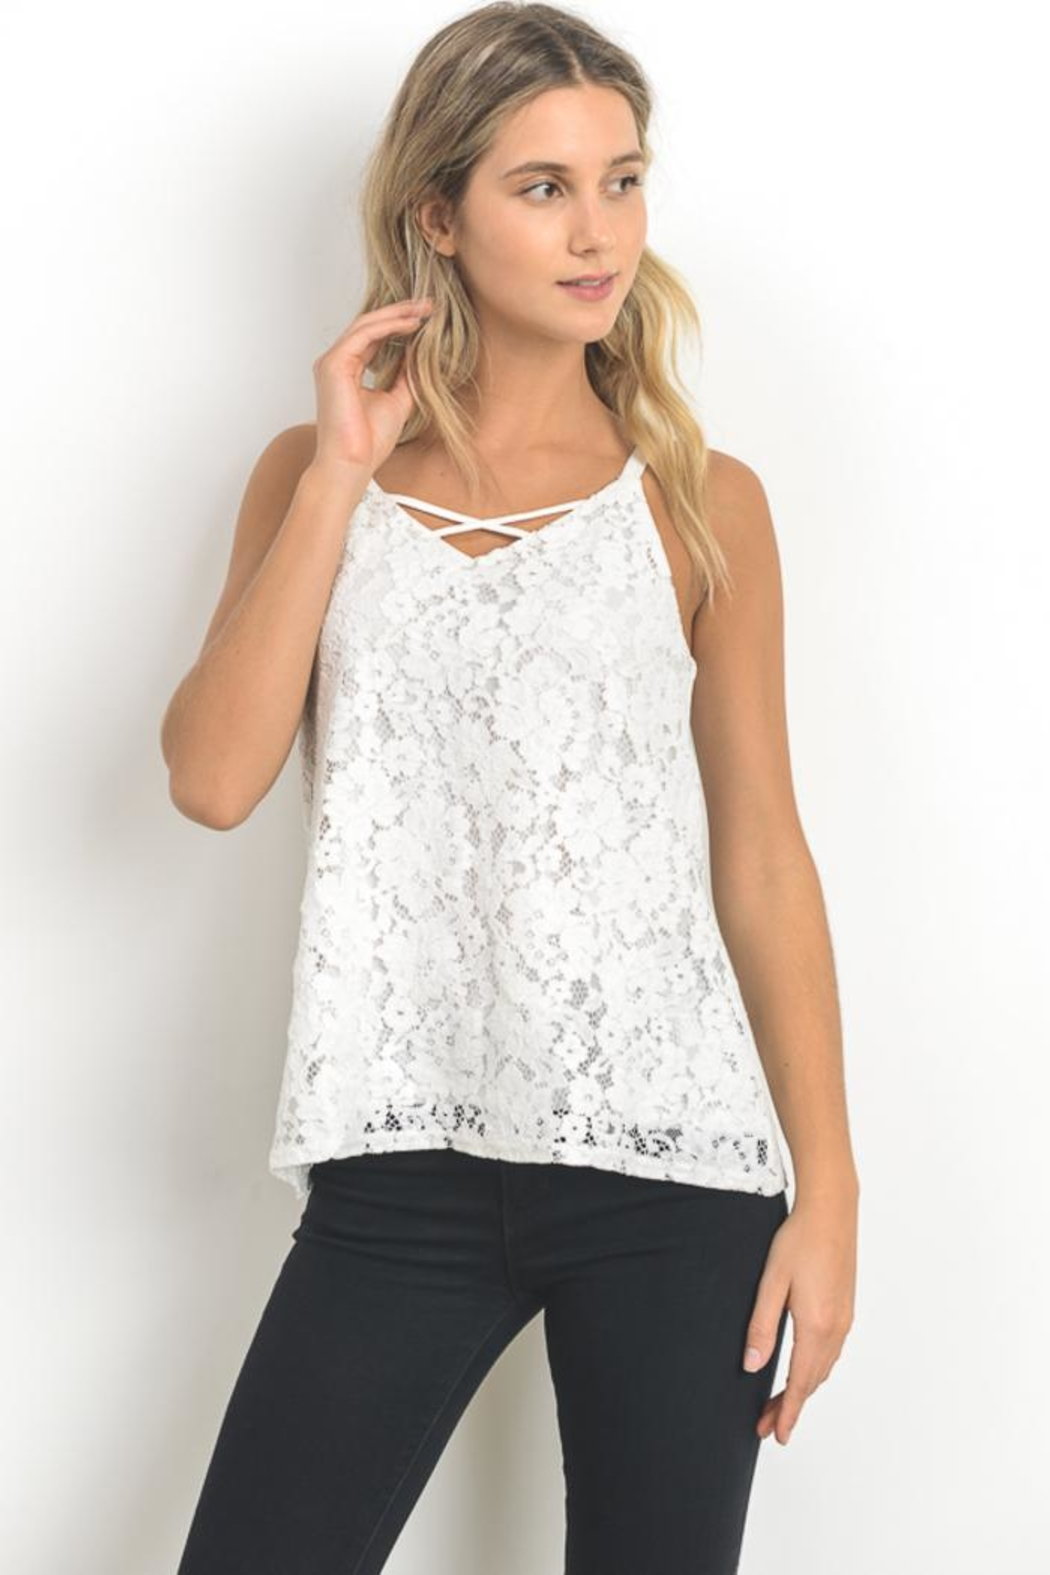 Elegance by Sarah Ruhs Scallop Lace Cami - Main Image